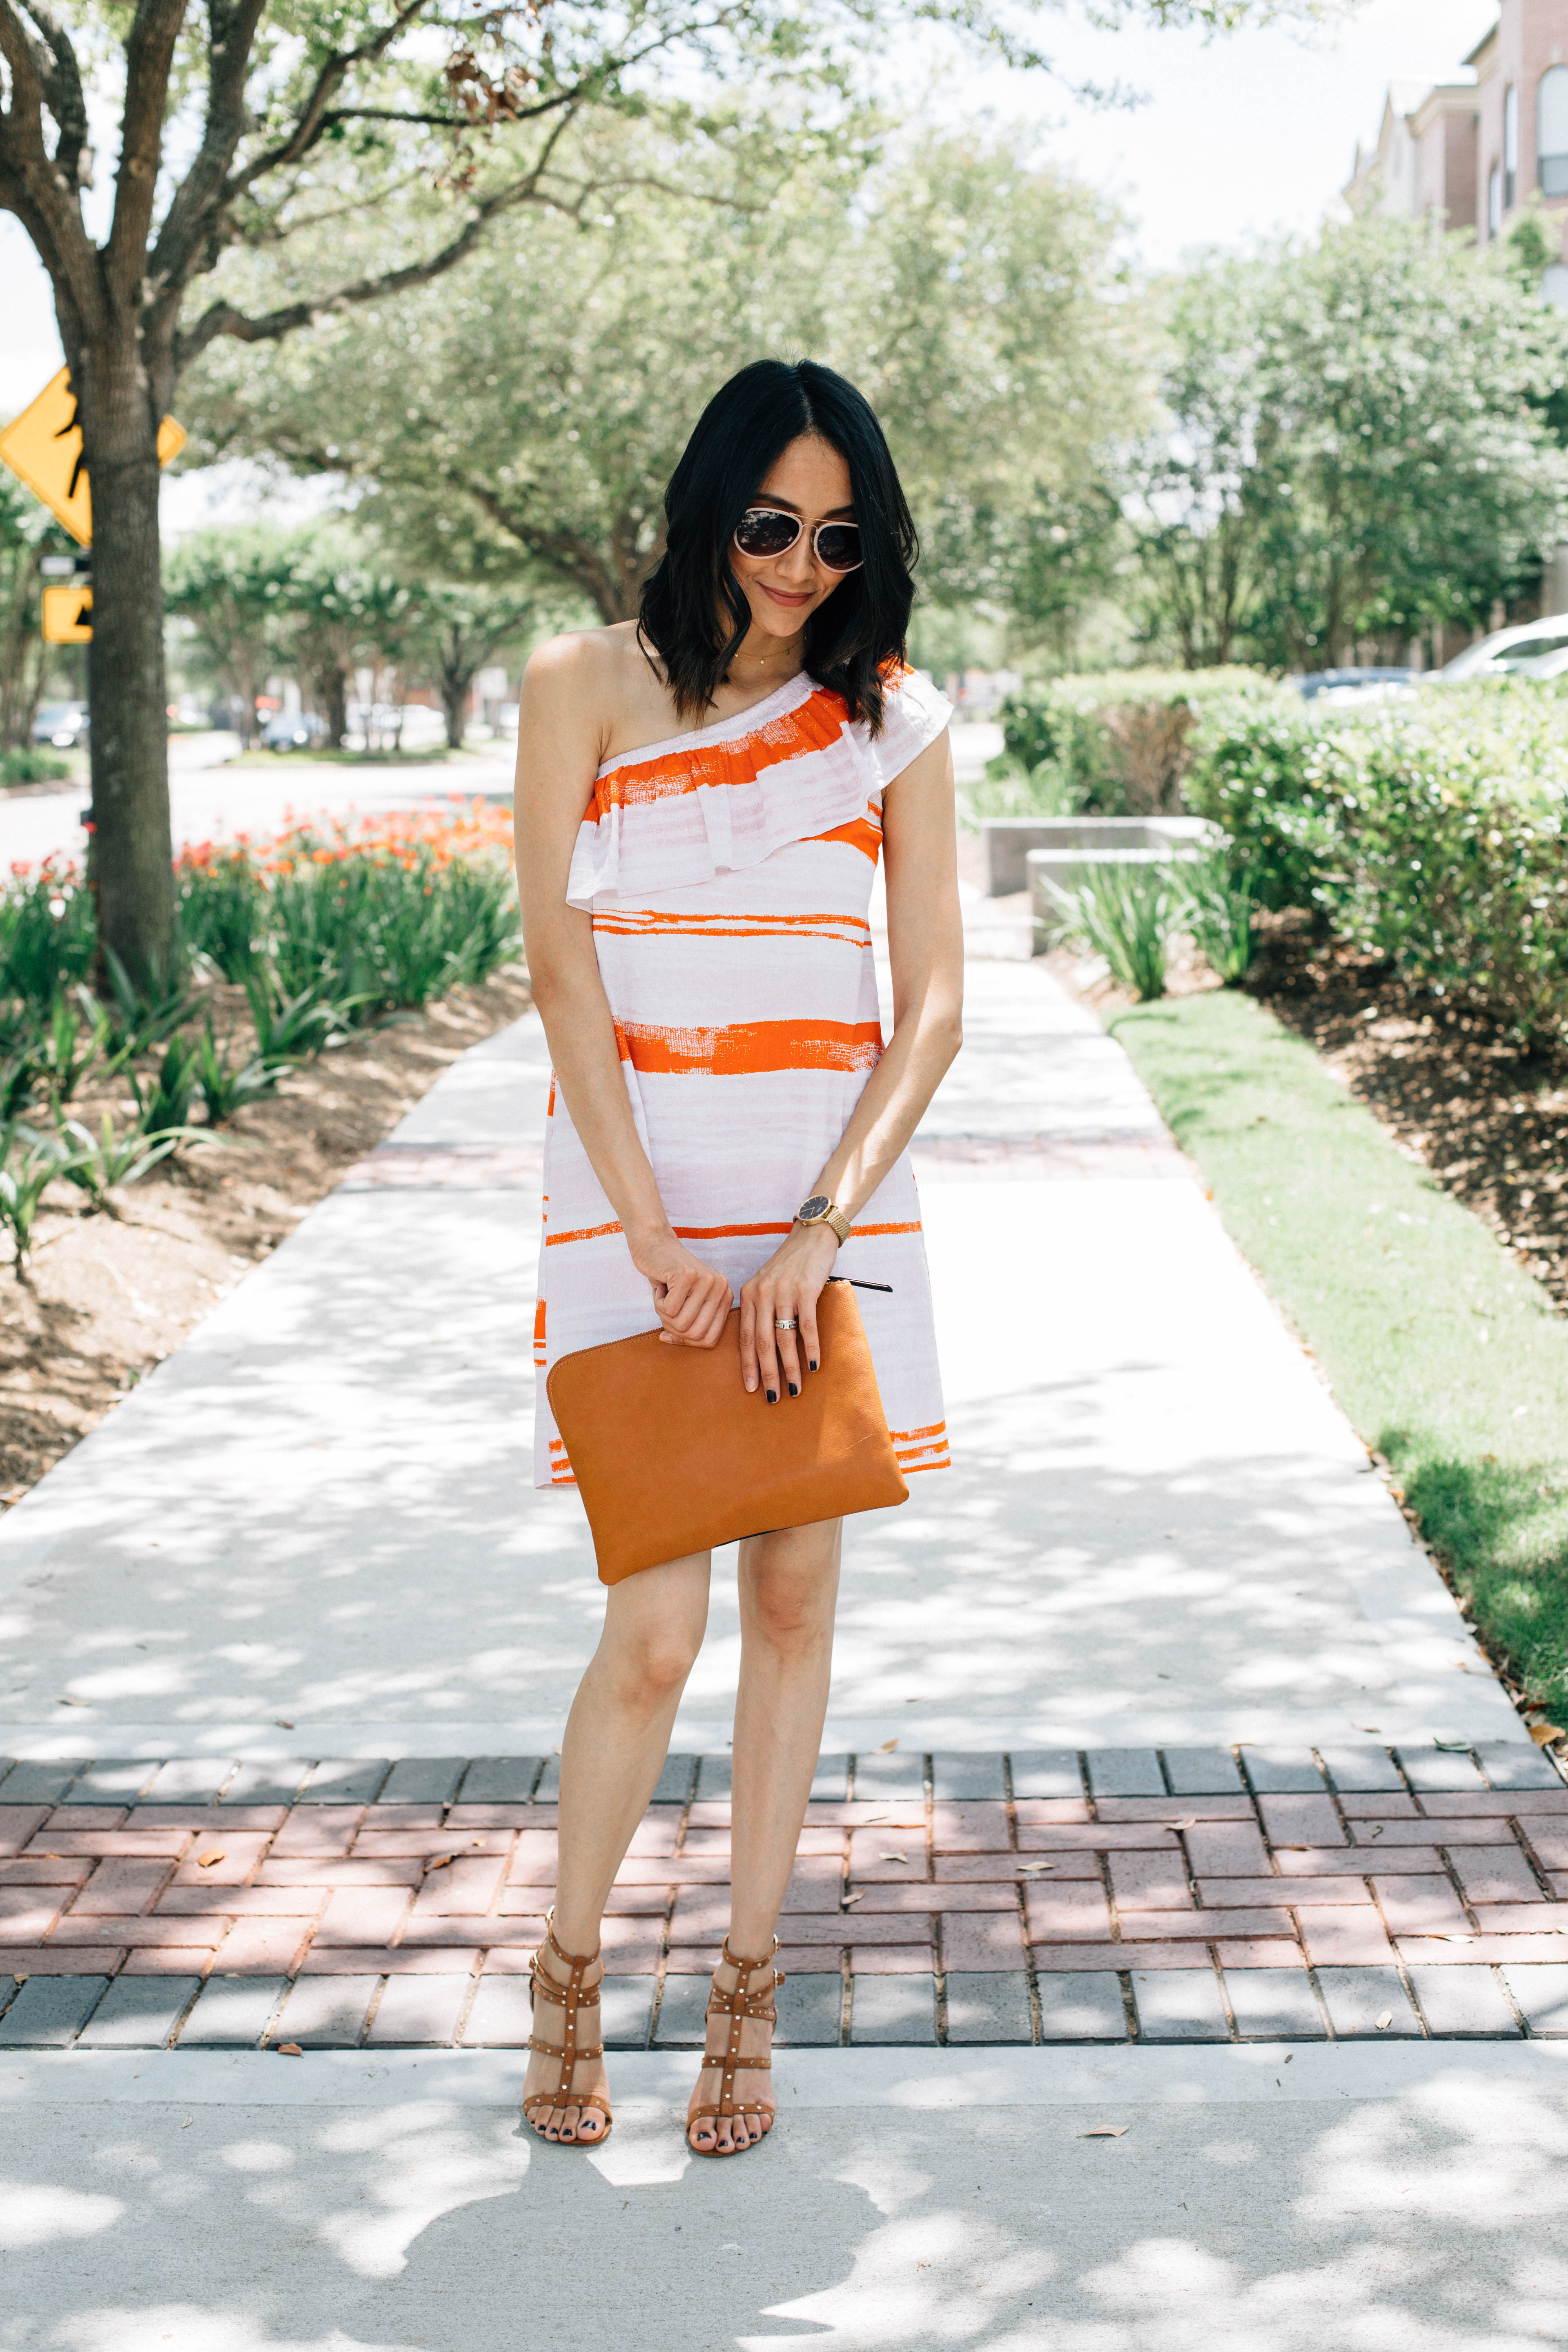 Lilly Beltran of Daily Craving blog in a chic brunch look with a striped one-shoulder dress, studded sandals and who what wear clutch